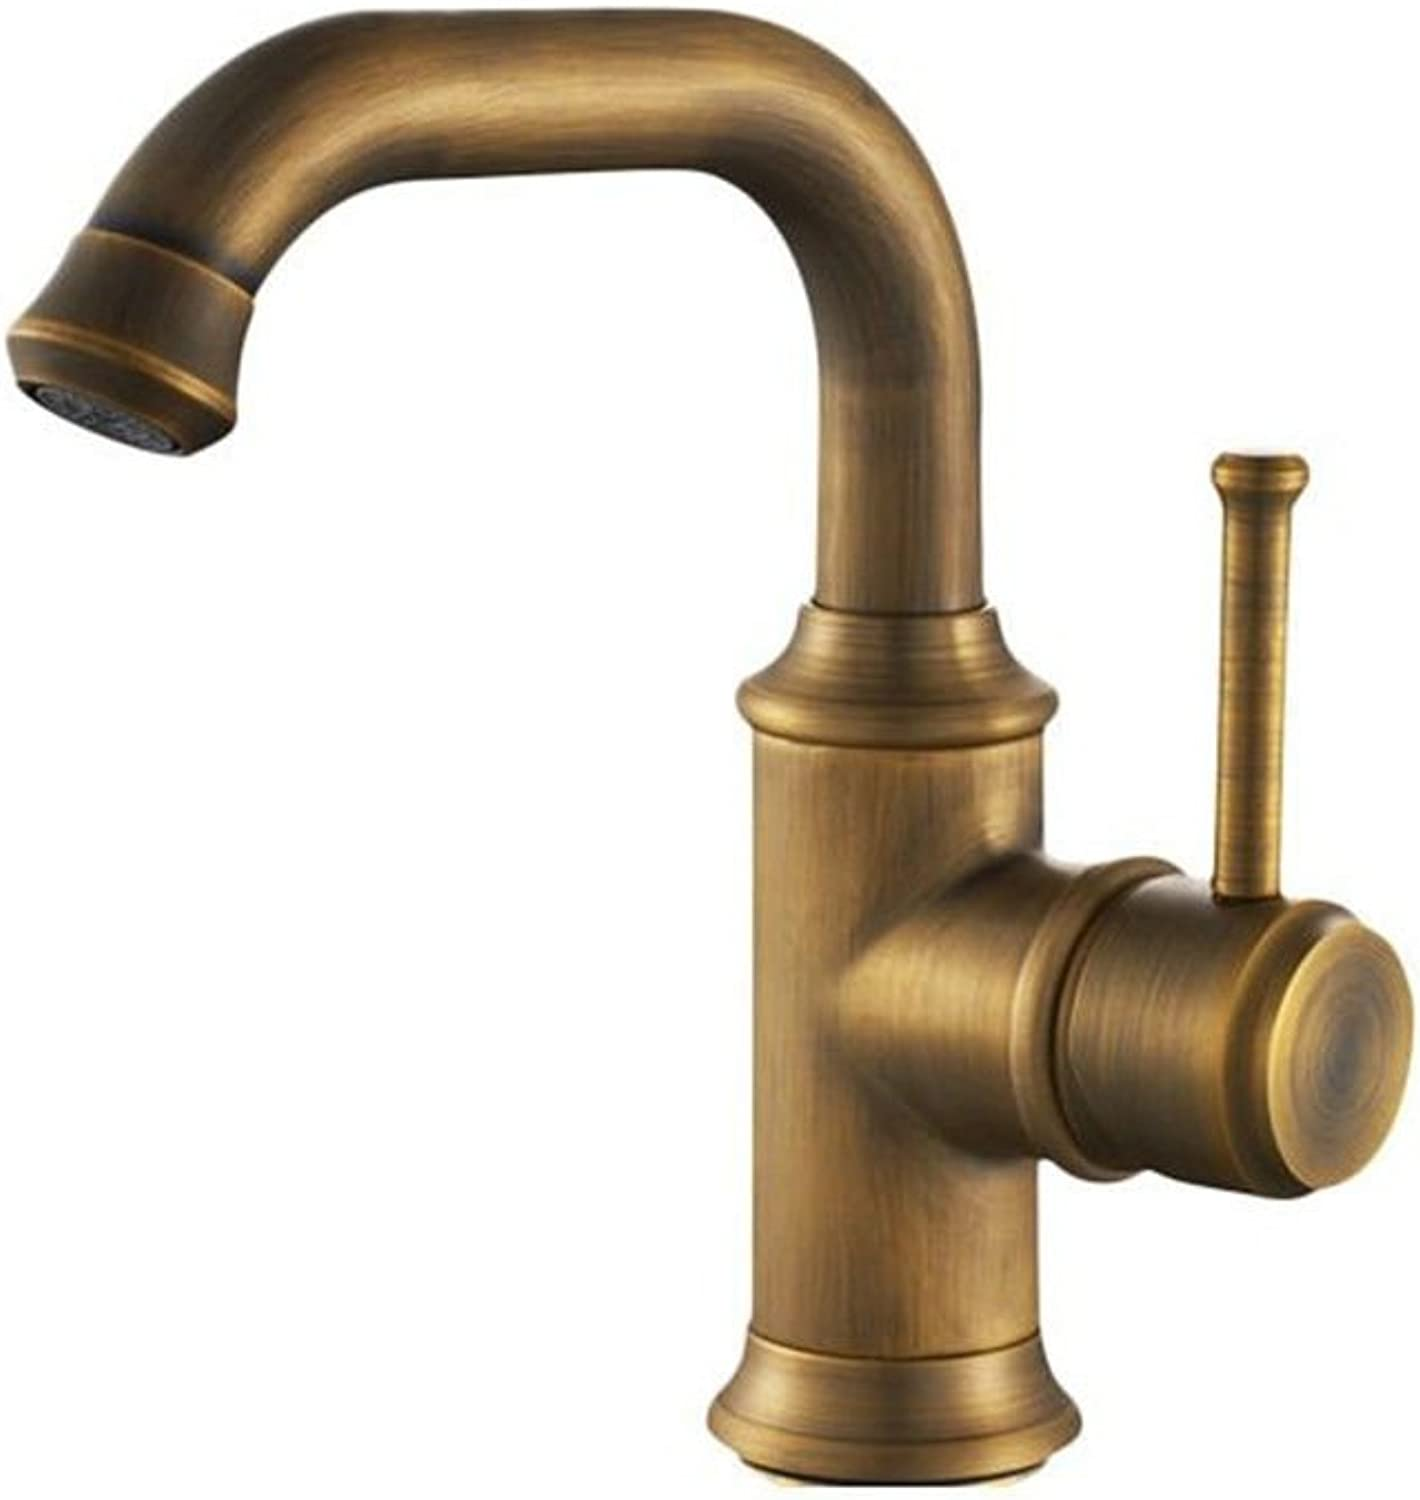 ETERNAL QUALITY Bathroom Sink Basin Tap Brass Mixer Tap Washroom Mixer Faucet redary table basin faucet antique faucet full copper hot and cold single handle single hole